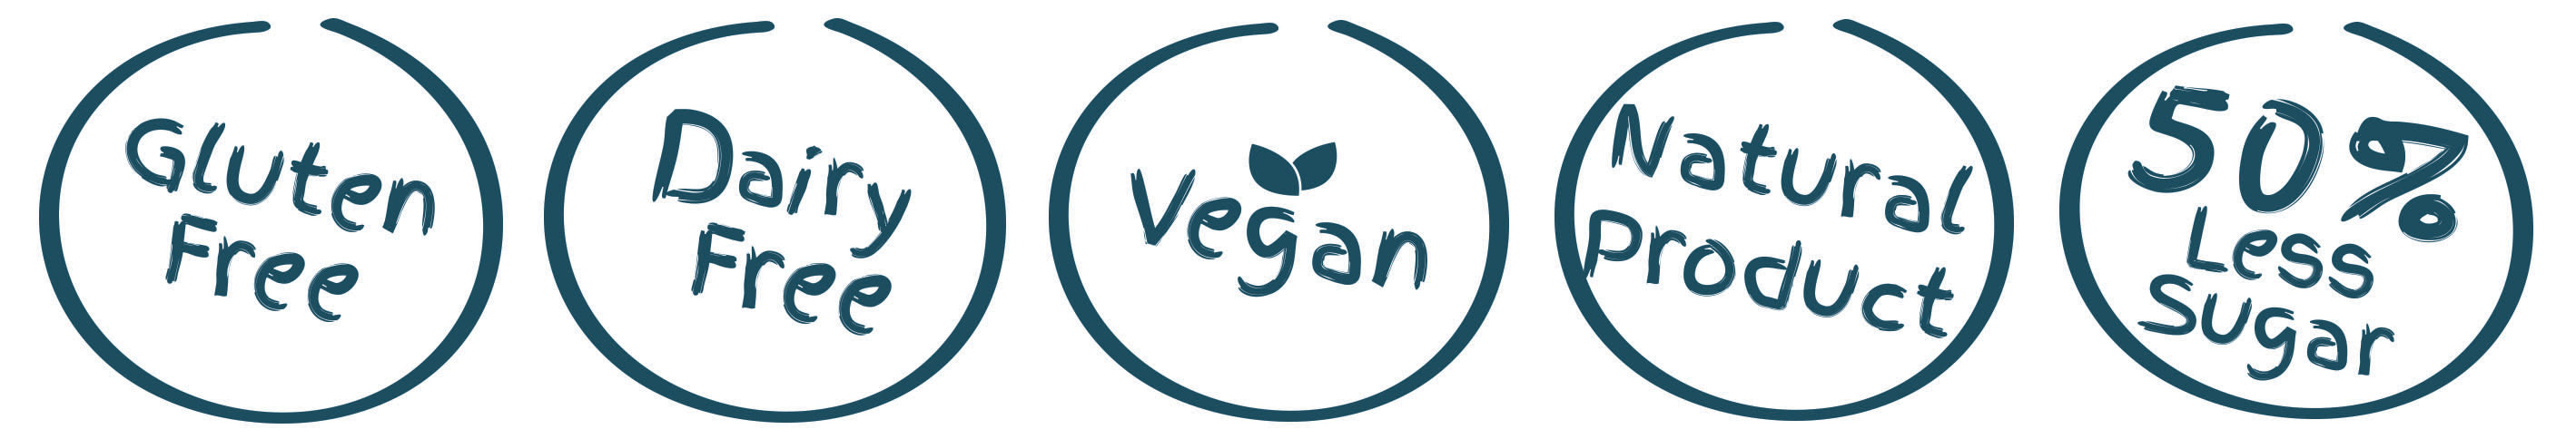 Gluten free, dairy free, no artificial preservatives and vegan friendly.